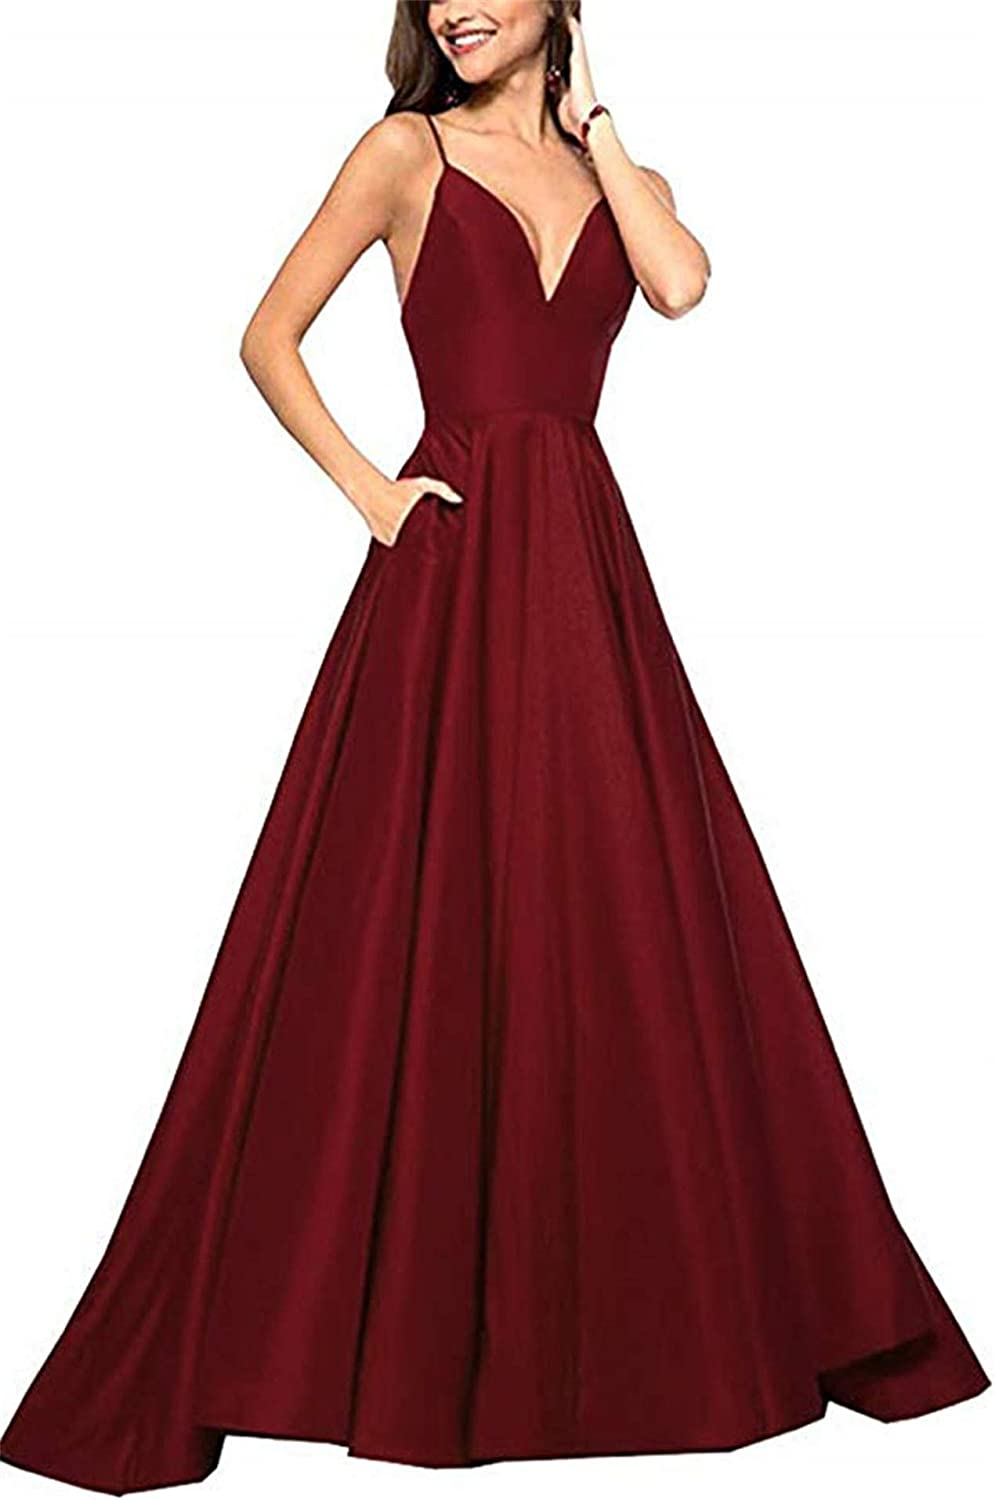 Falydal A Line Prom Dress Long 2019 Spaghetti Straps Satin Evening Formal Gowns